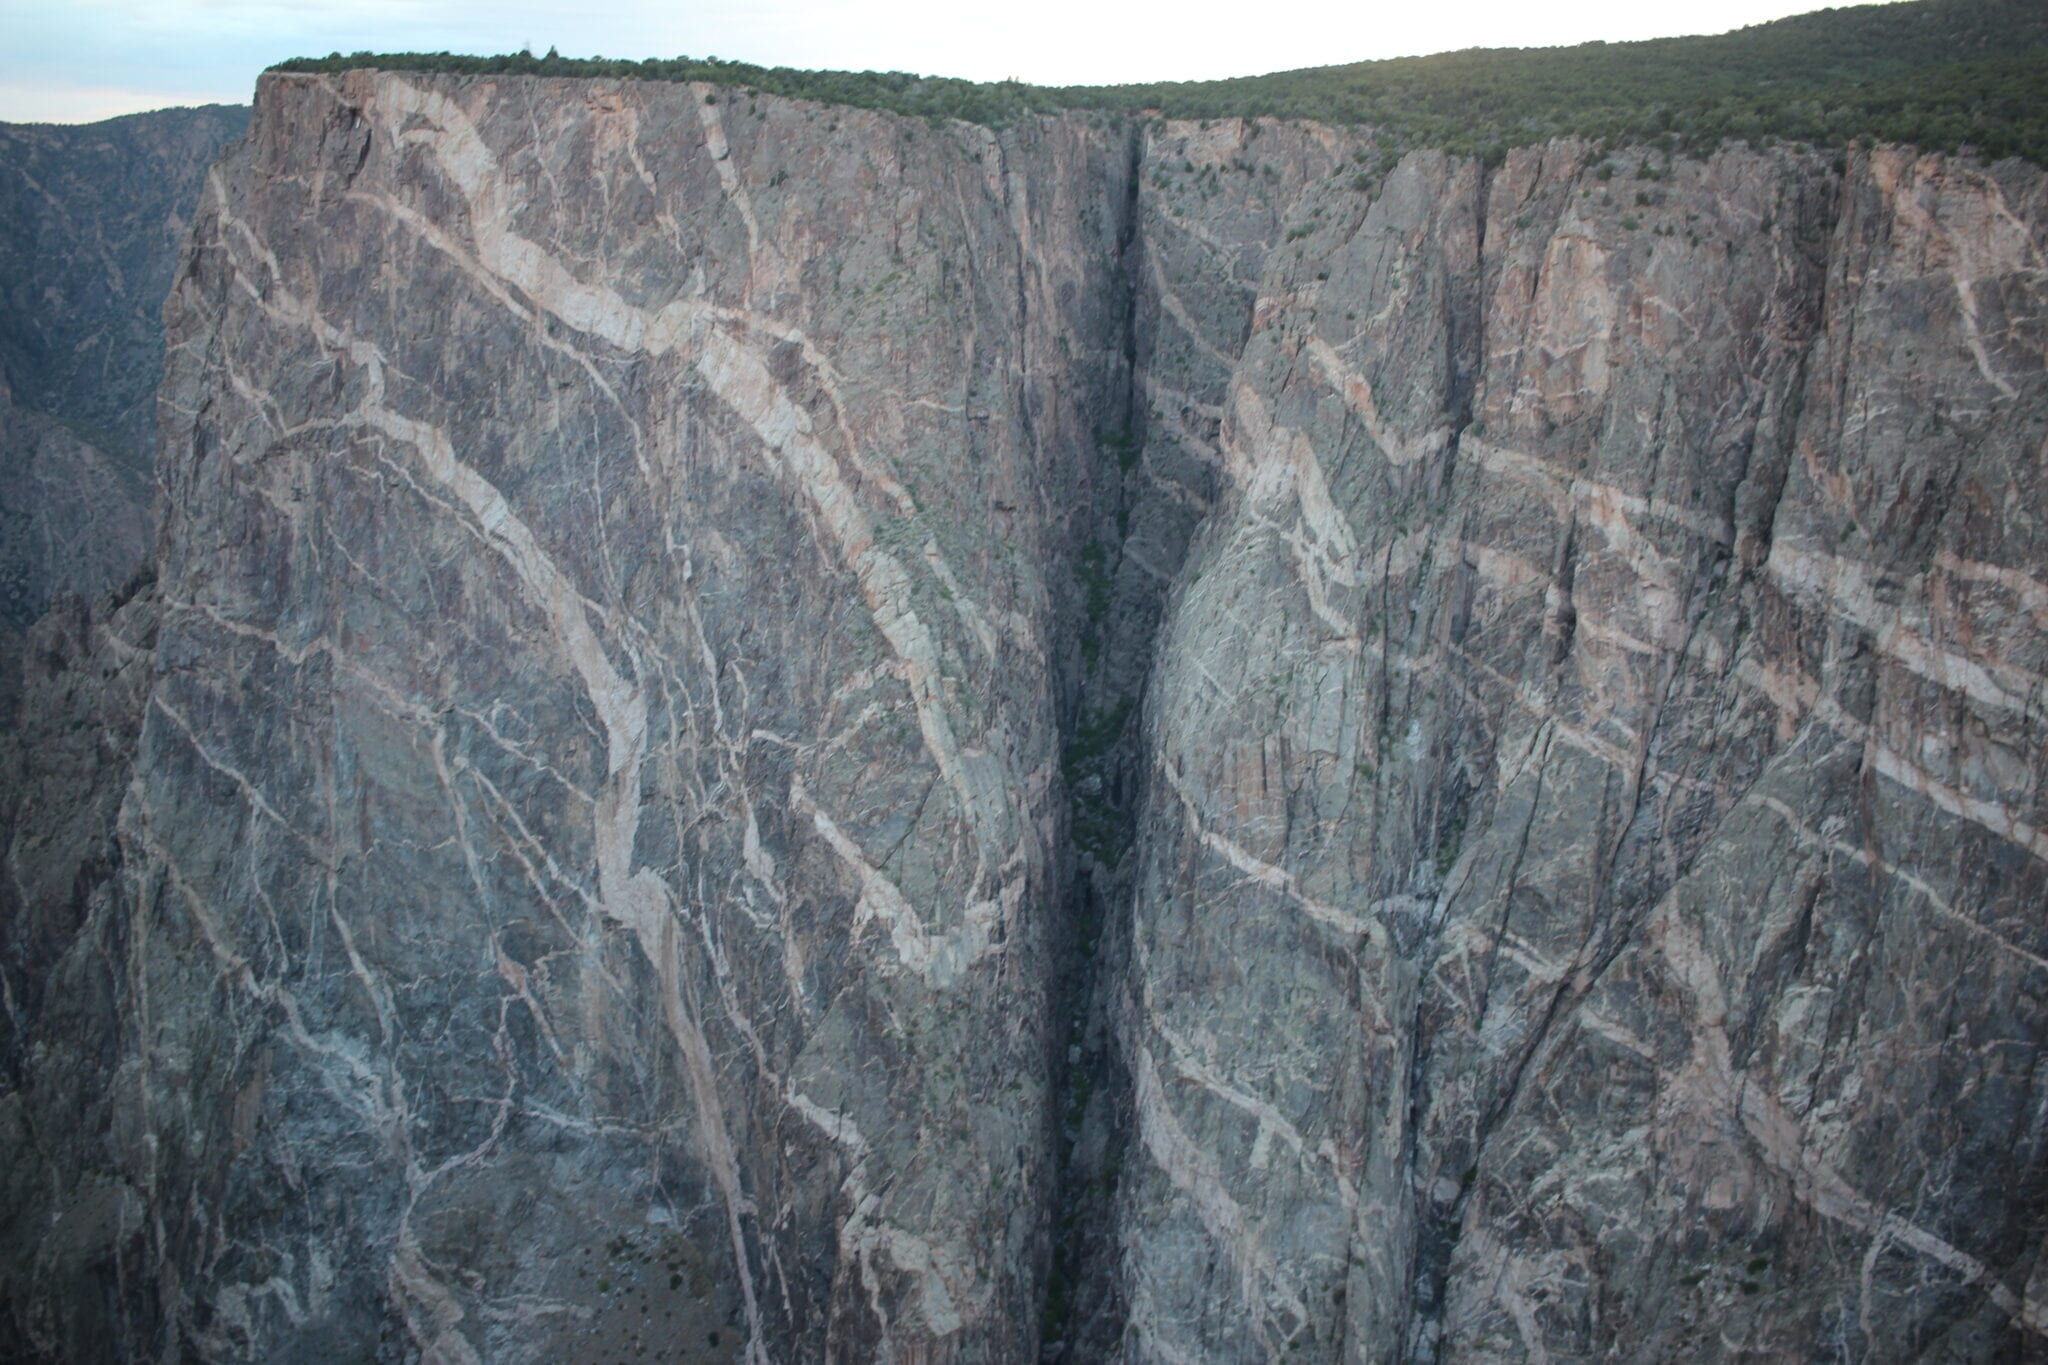 """Painted Wall"" at Black Canyon of the Gunnison National Park"